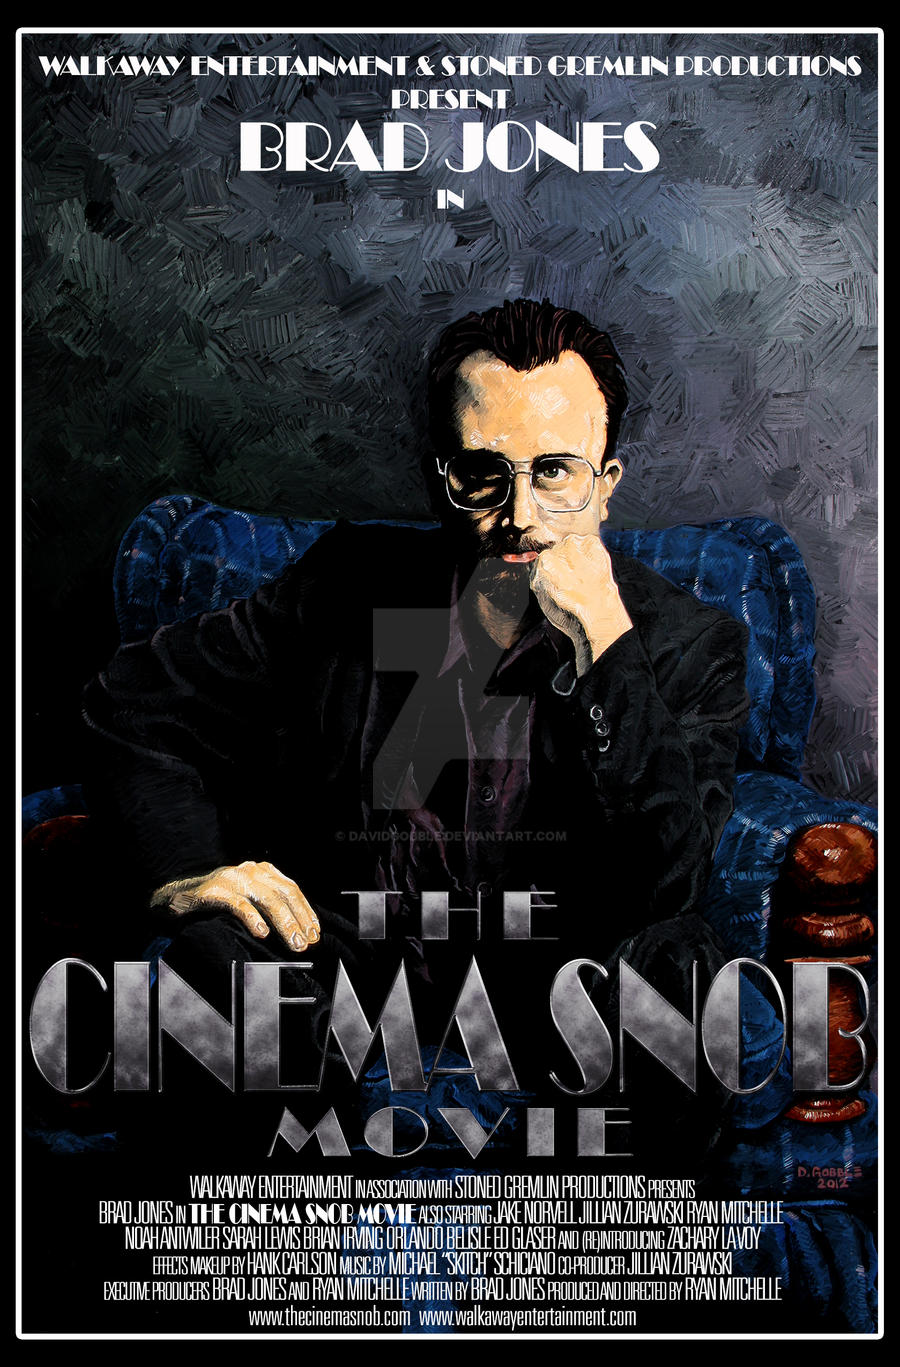 Cinema Snob Movie Poster (Final Version)